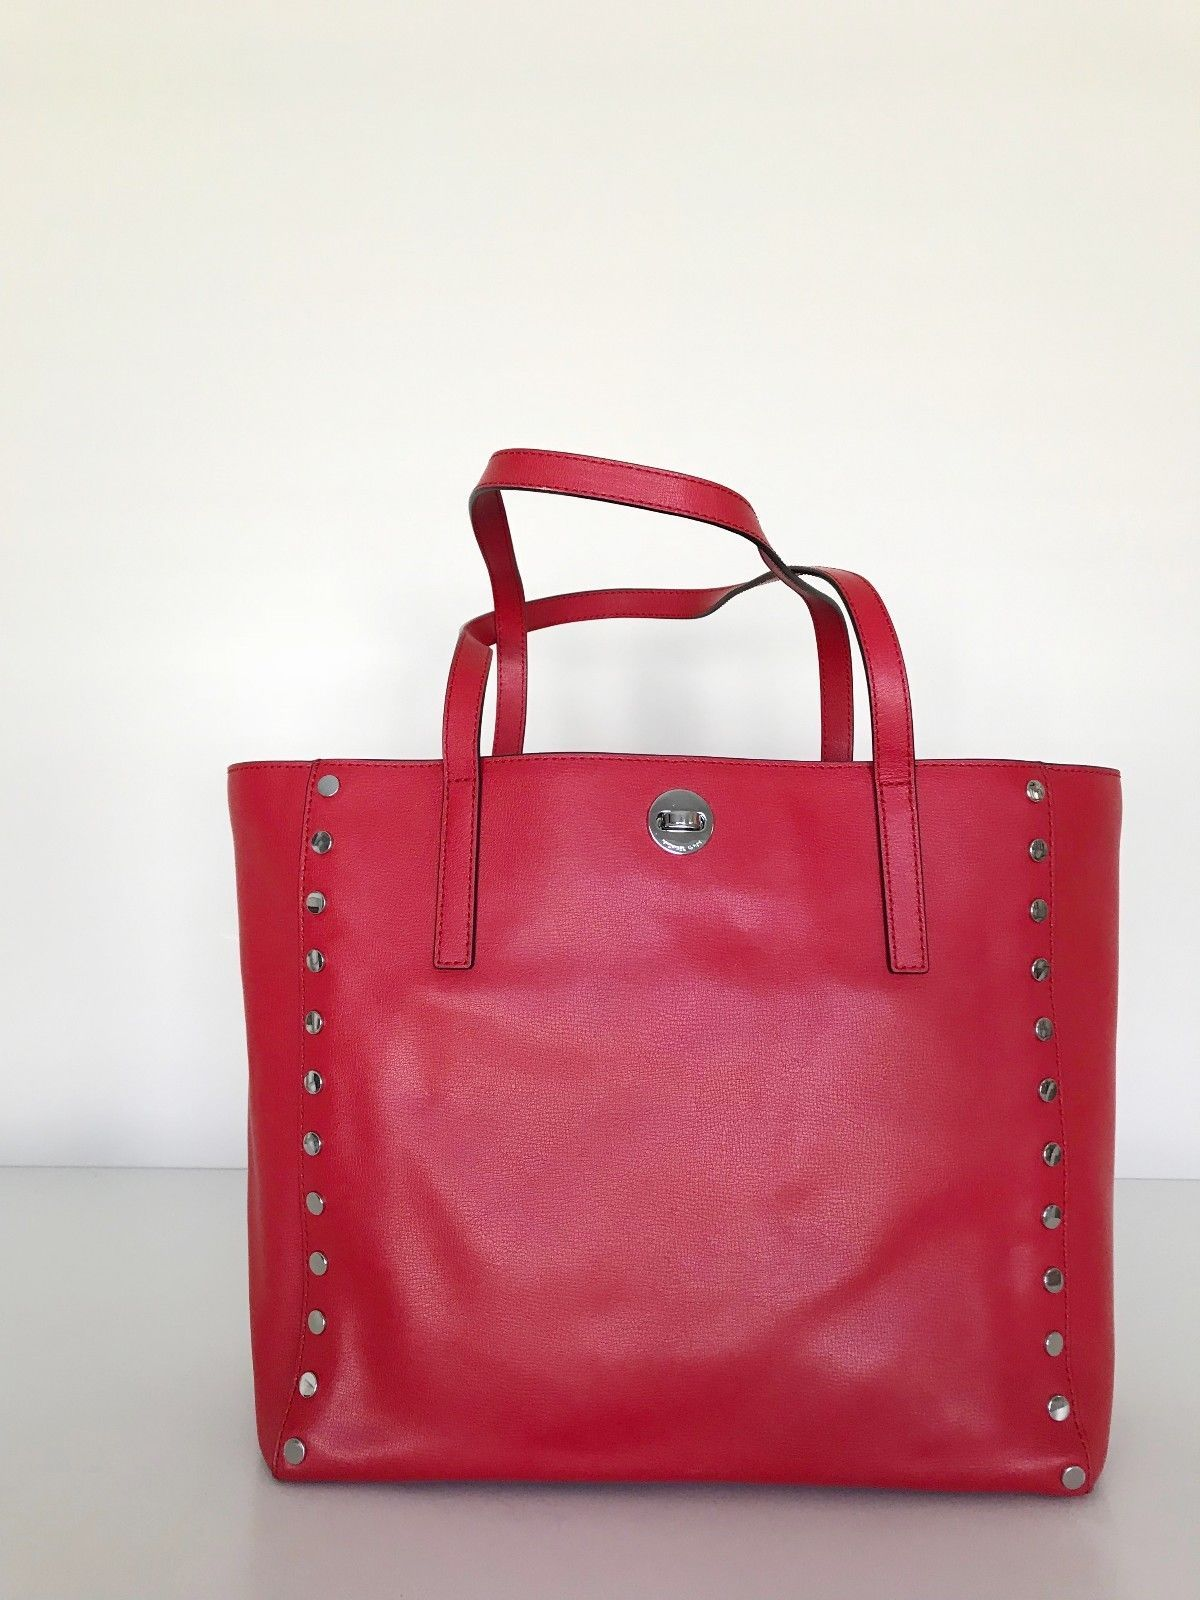 7c3cf6f2d3b8 Michael Kors Rivington Stud Lg Leather Tote Bright Red Tote NEW 100%  Authentic